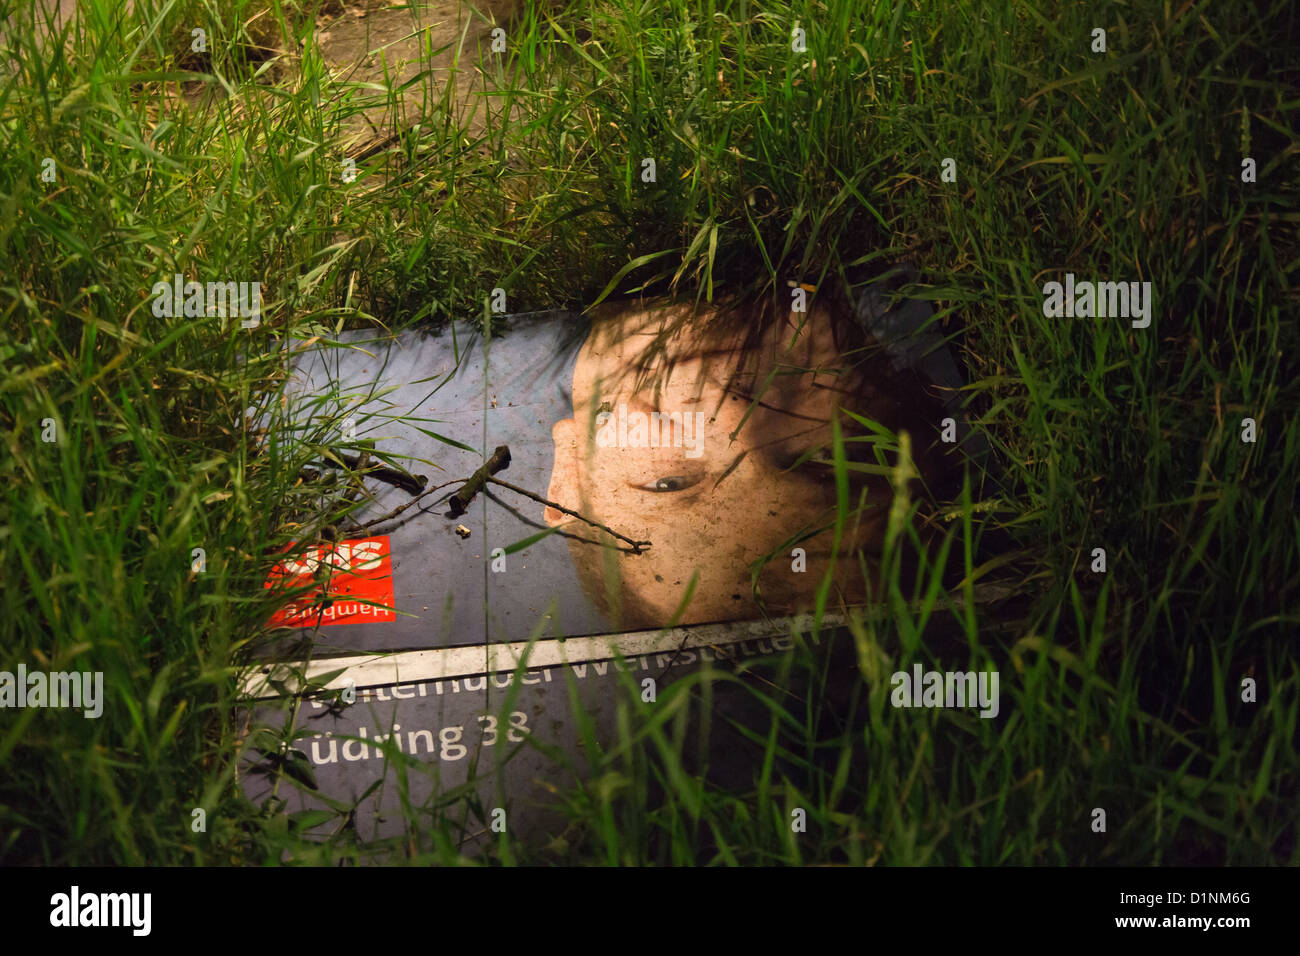 Hamburg, Germany, lying in the grass election poster with Olaf Scholz - Stock Image